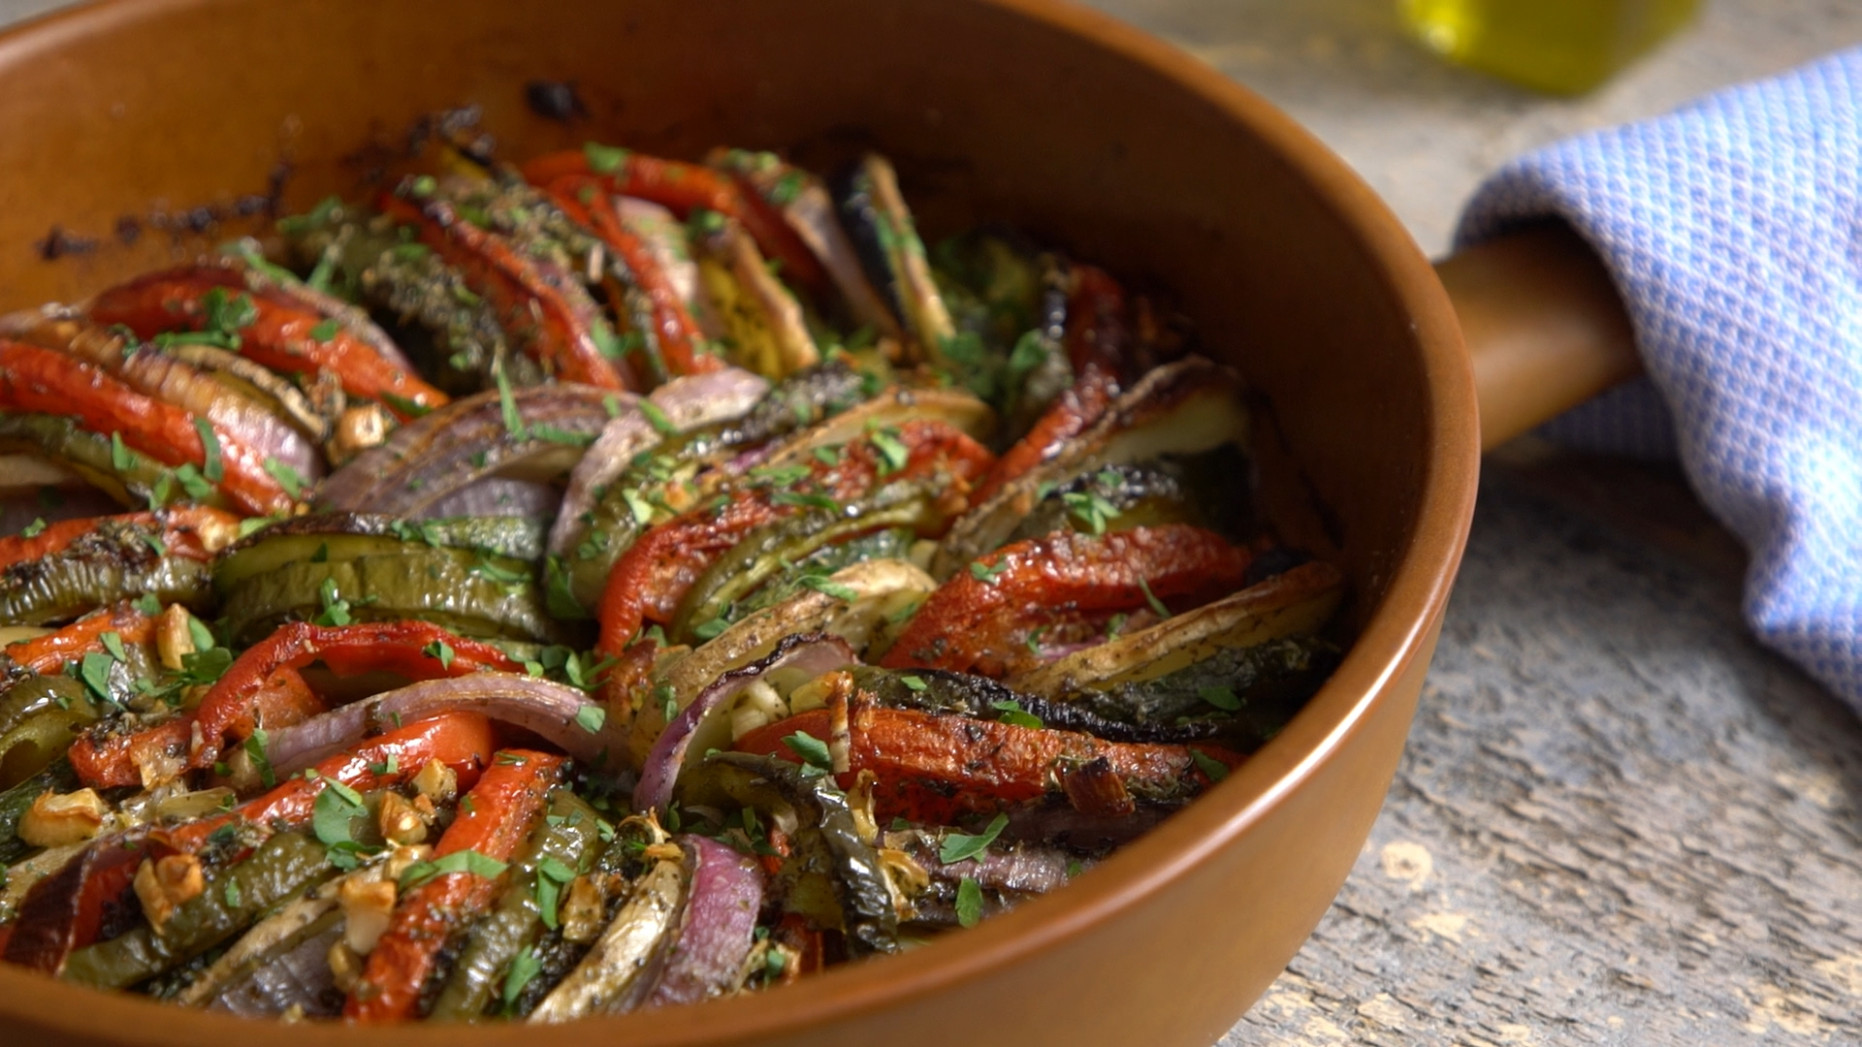 Briam, Roasted Vegetable Casserole | Greek Food - Greek ...